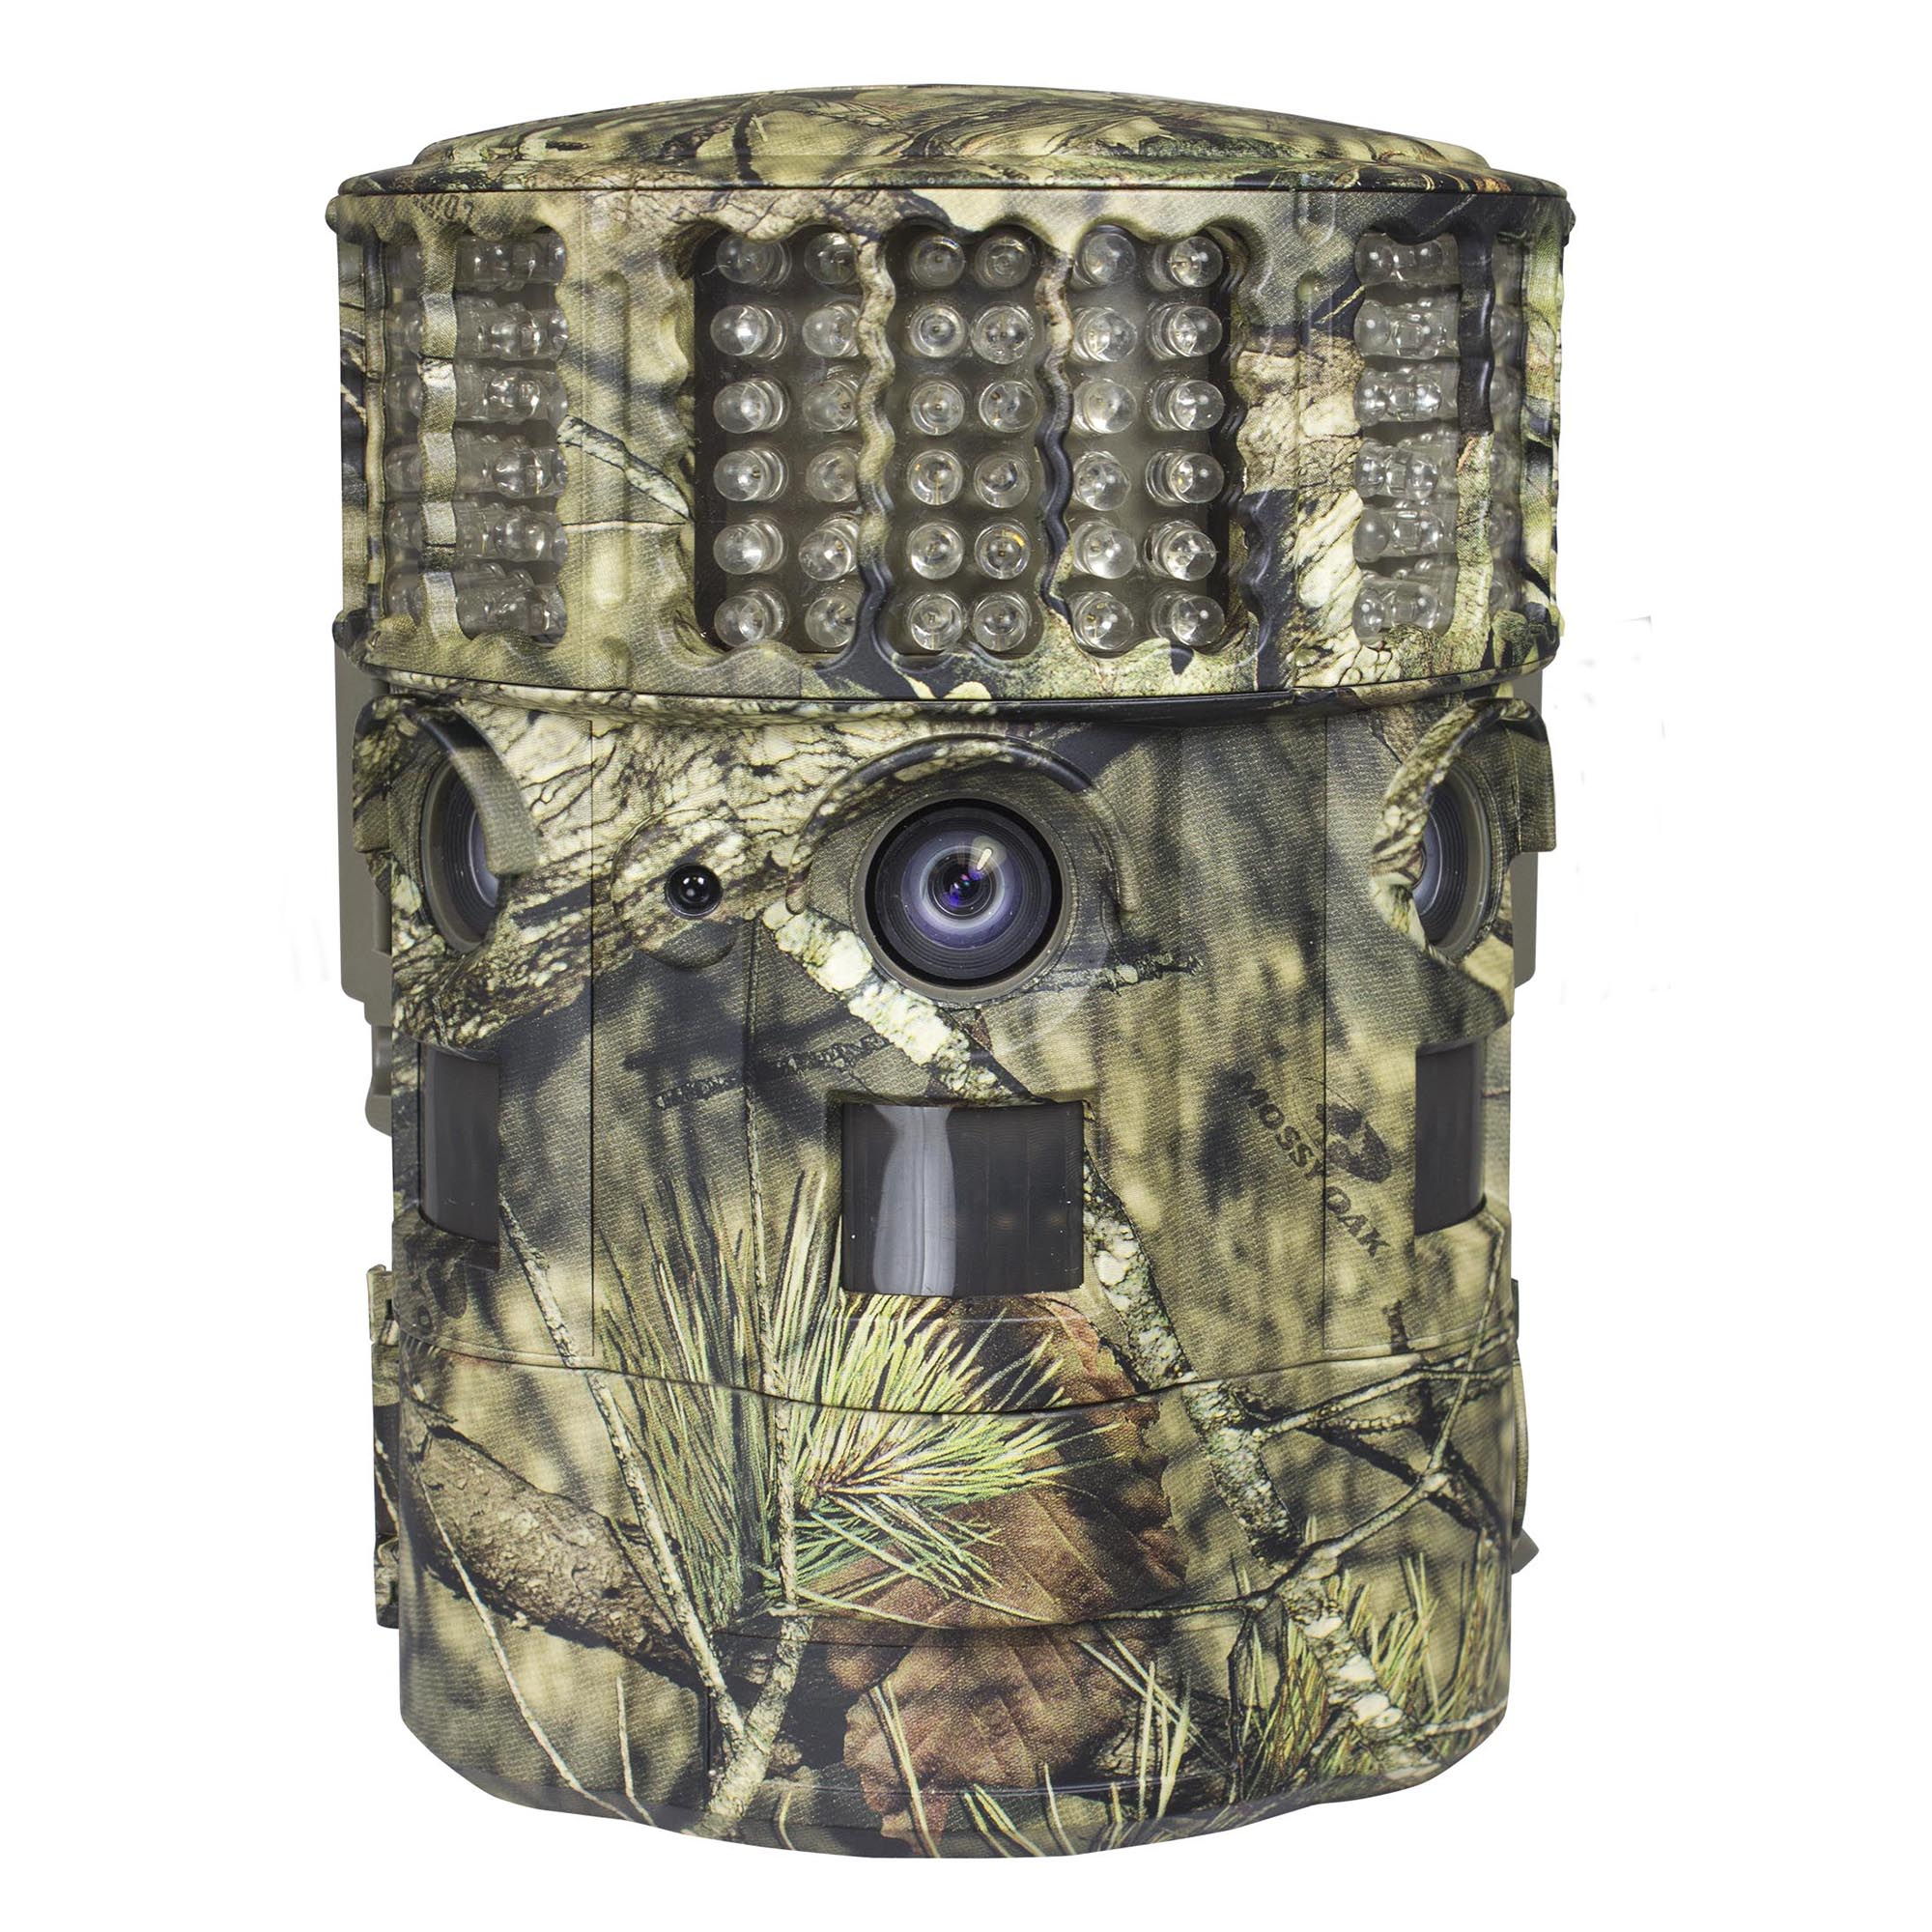 Moultire Panoramic 180i 14 Mega Pixel Game Camera, Mossy Oak Country by PRADCO OUTDOOR BRANDS